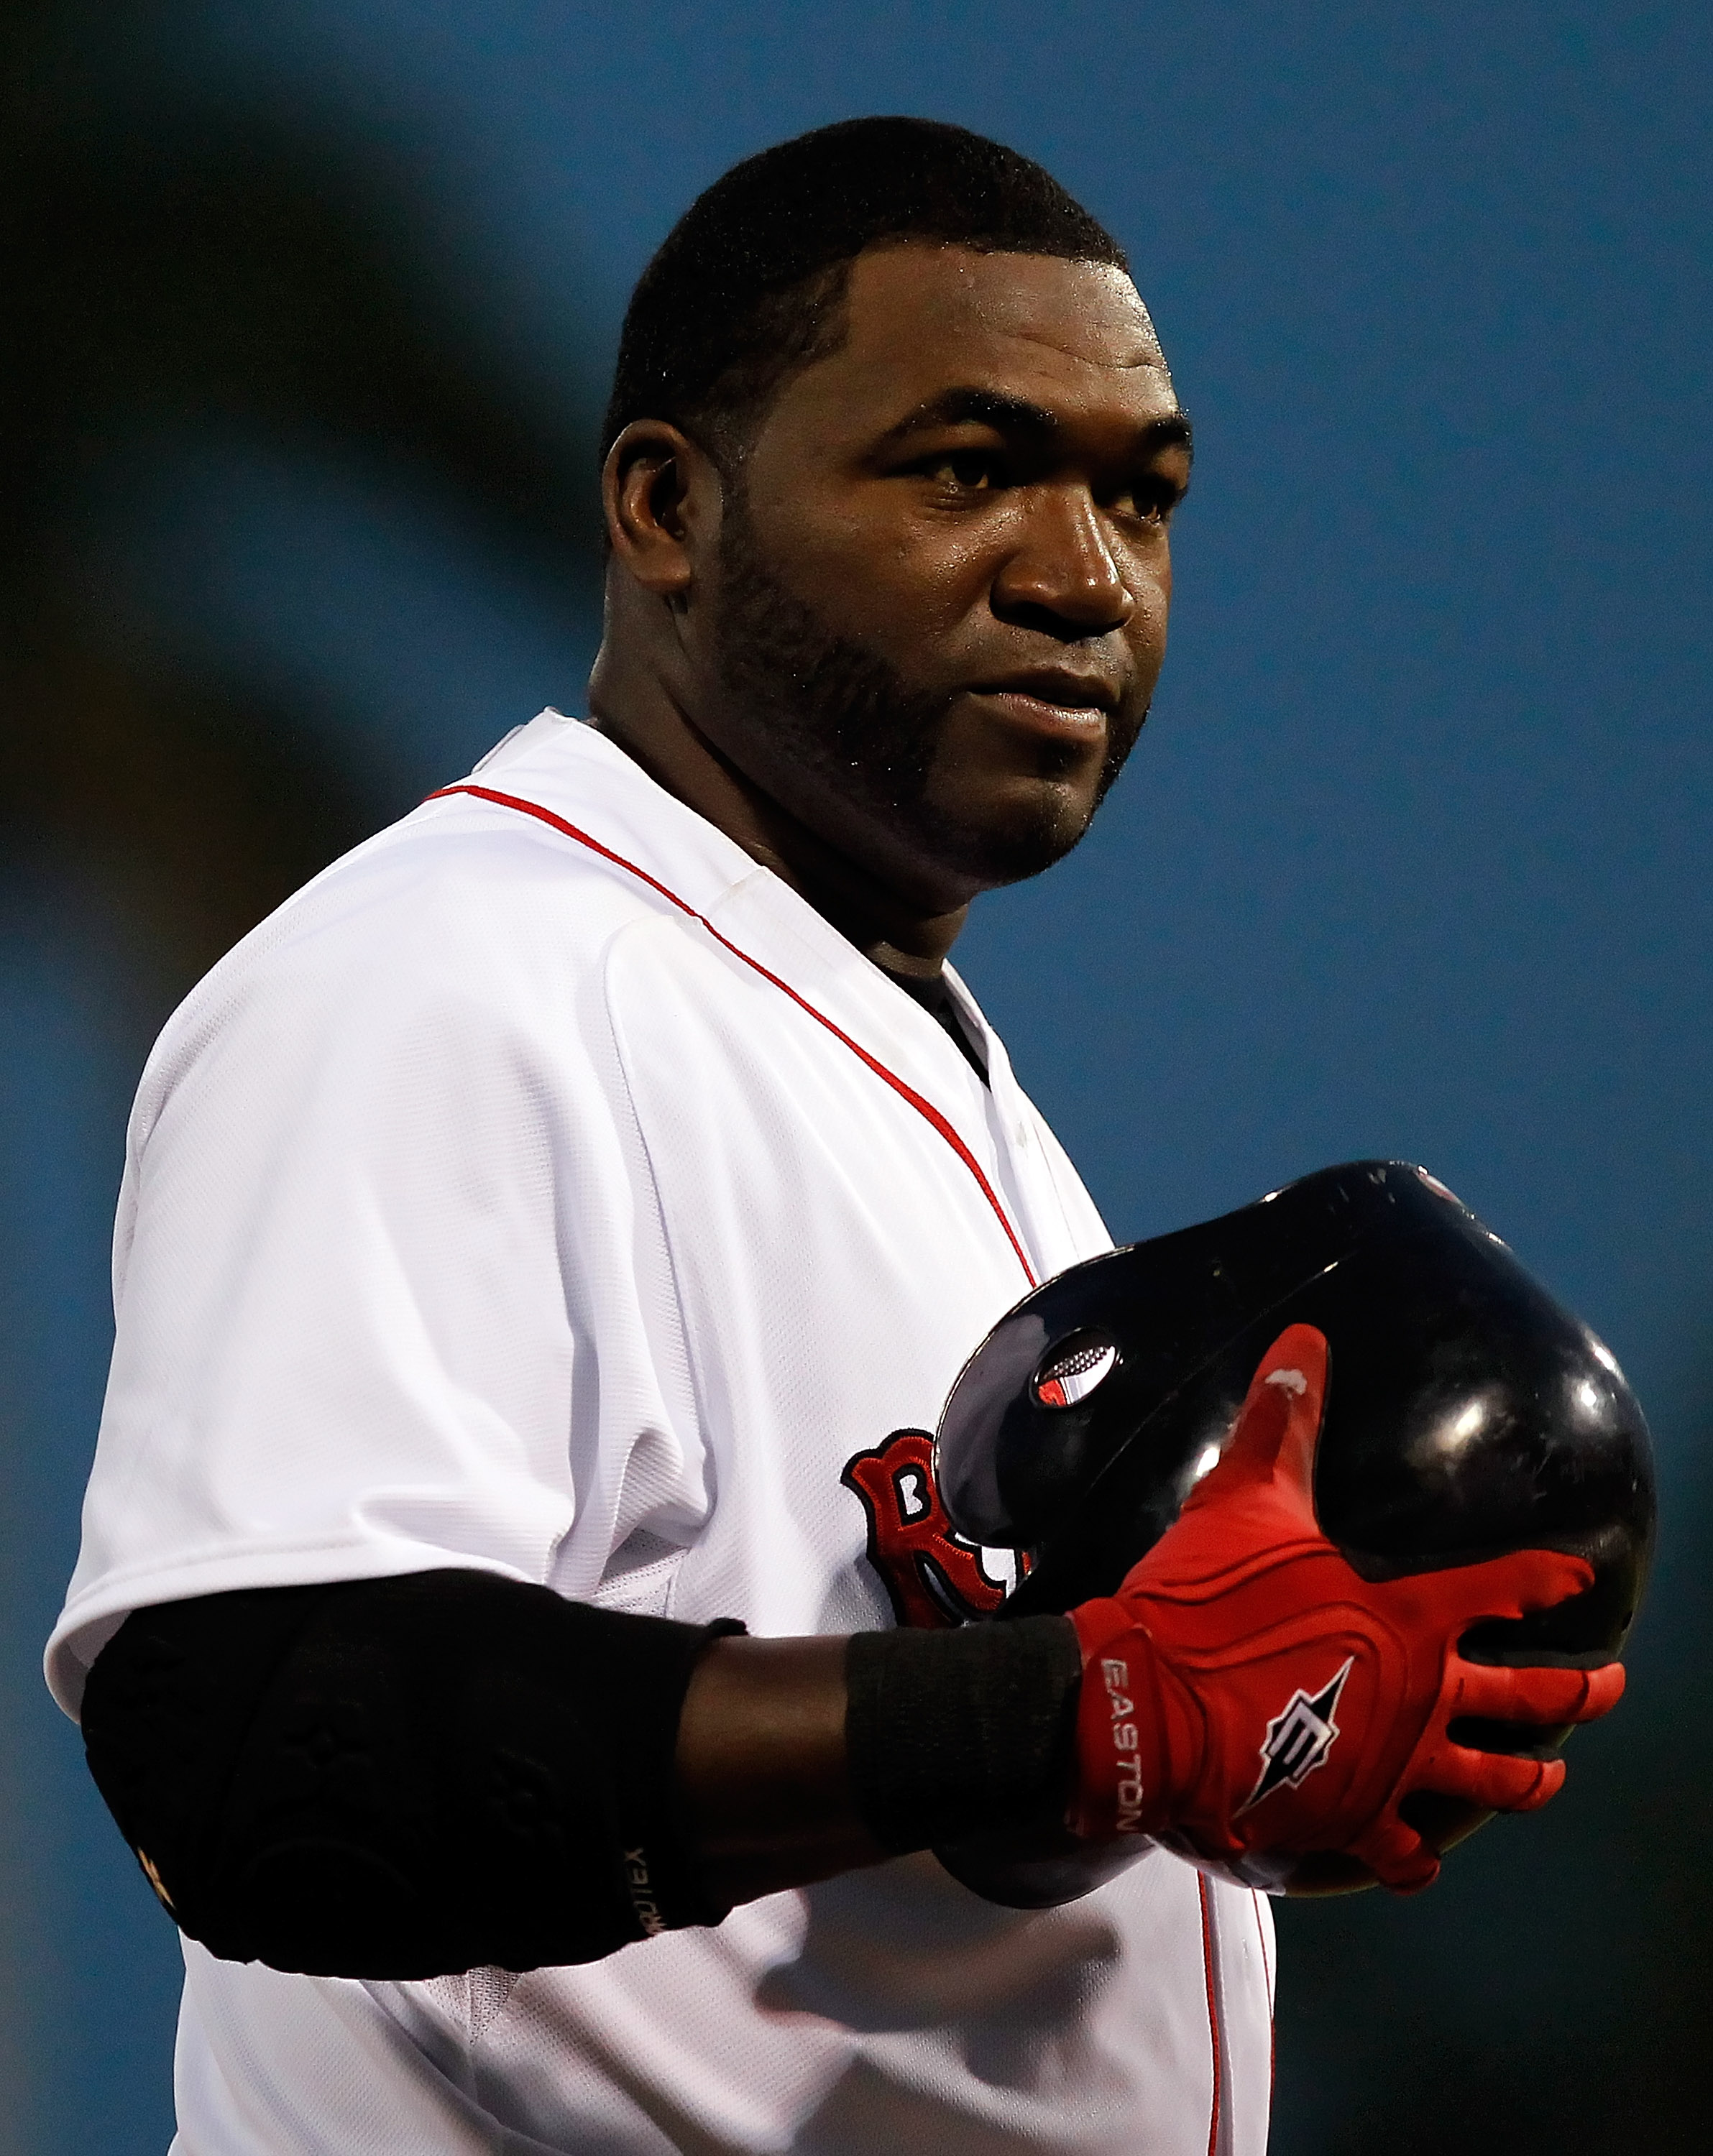 FORT MYERS, FL - MARCH 14:  Designated hitter David Ortiz #34 of the Boston Red Sox smiles after an inning against the New York Yankees during a Grapefruit League Spring Training Game at City of Palms Park on March 14, 2011 in Fort Myers, Florida.  (Photo